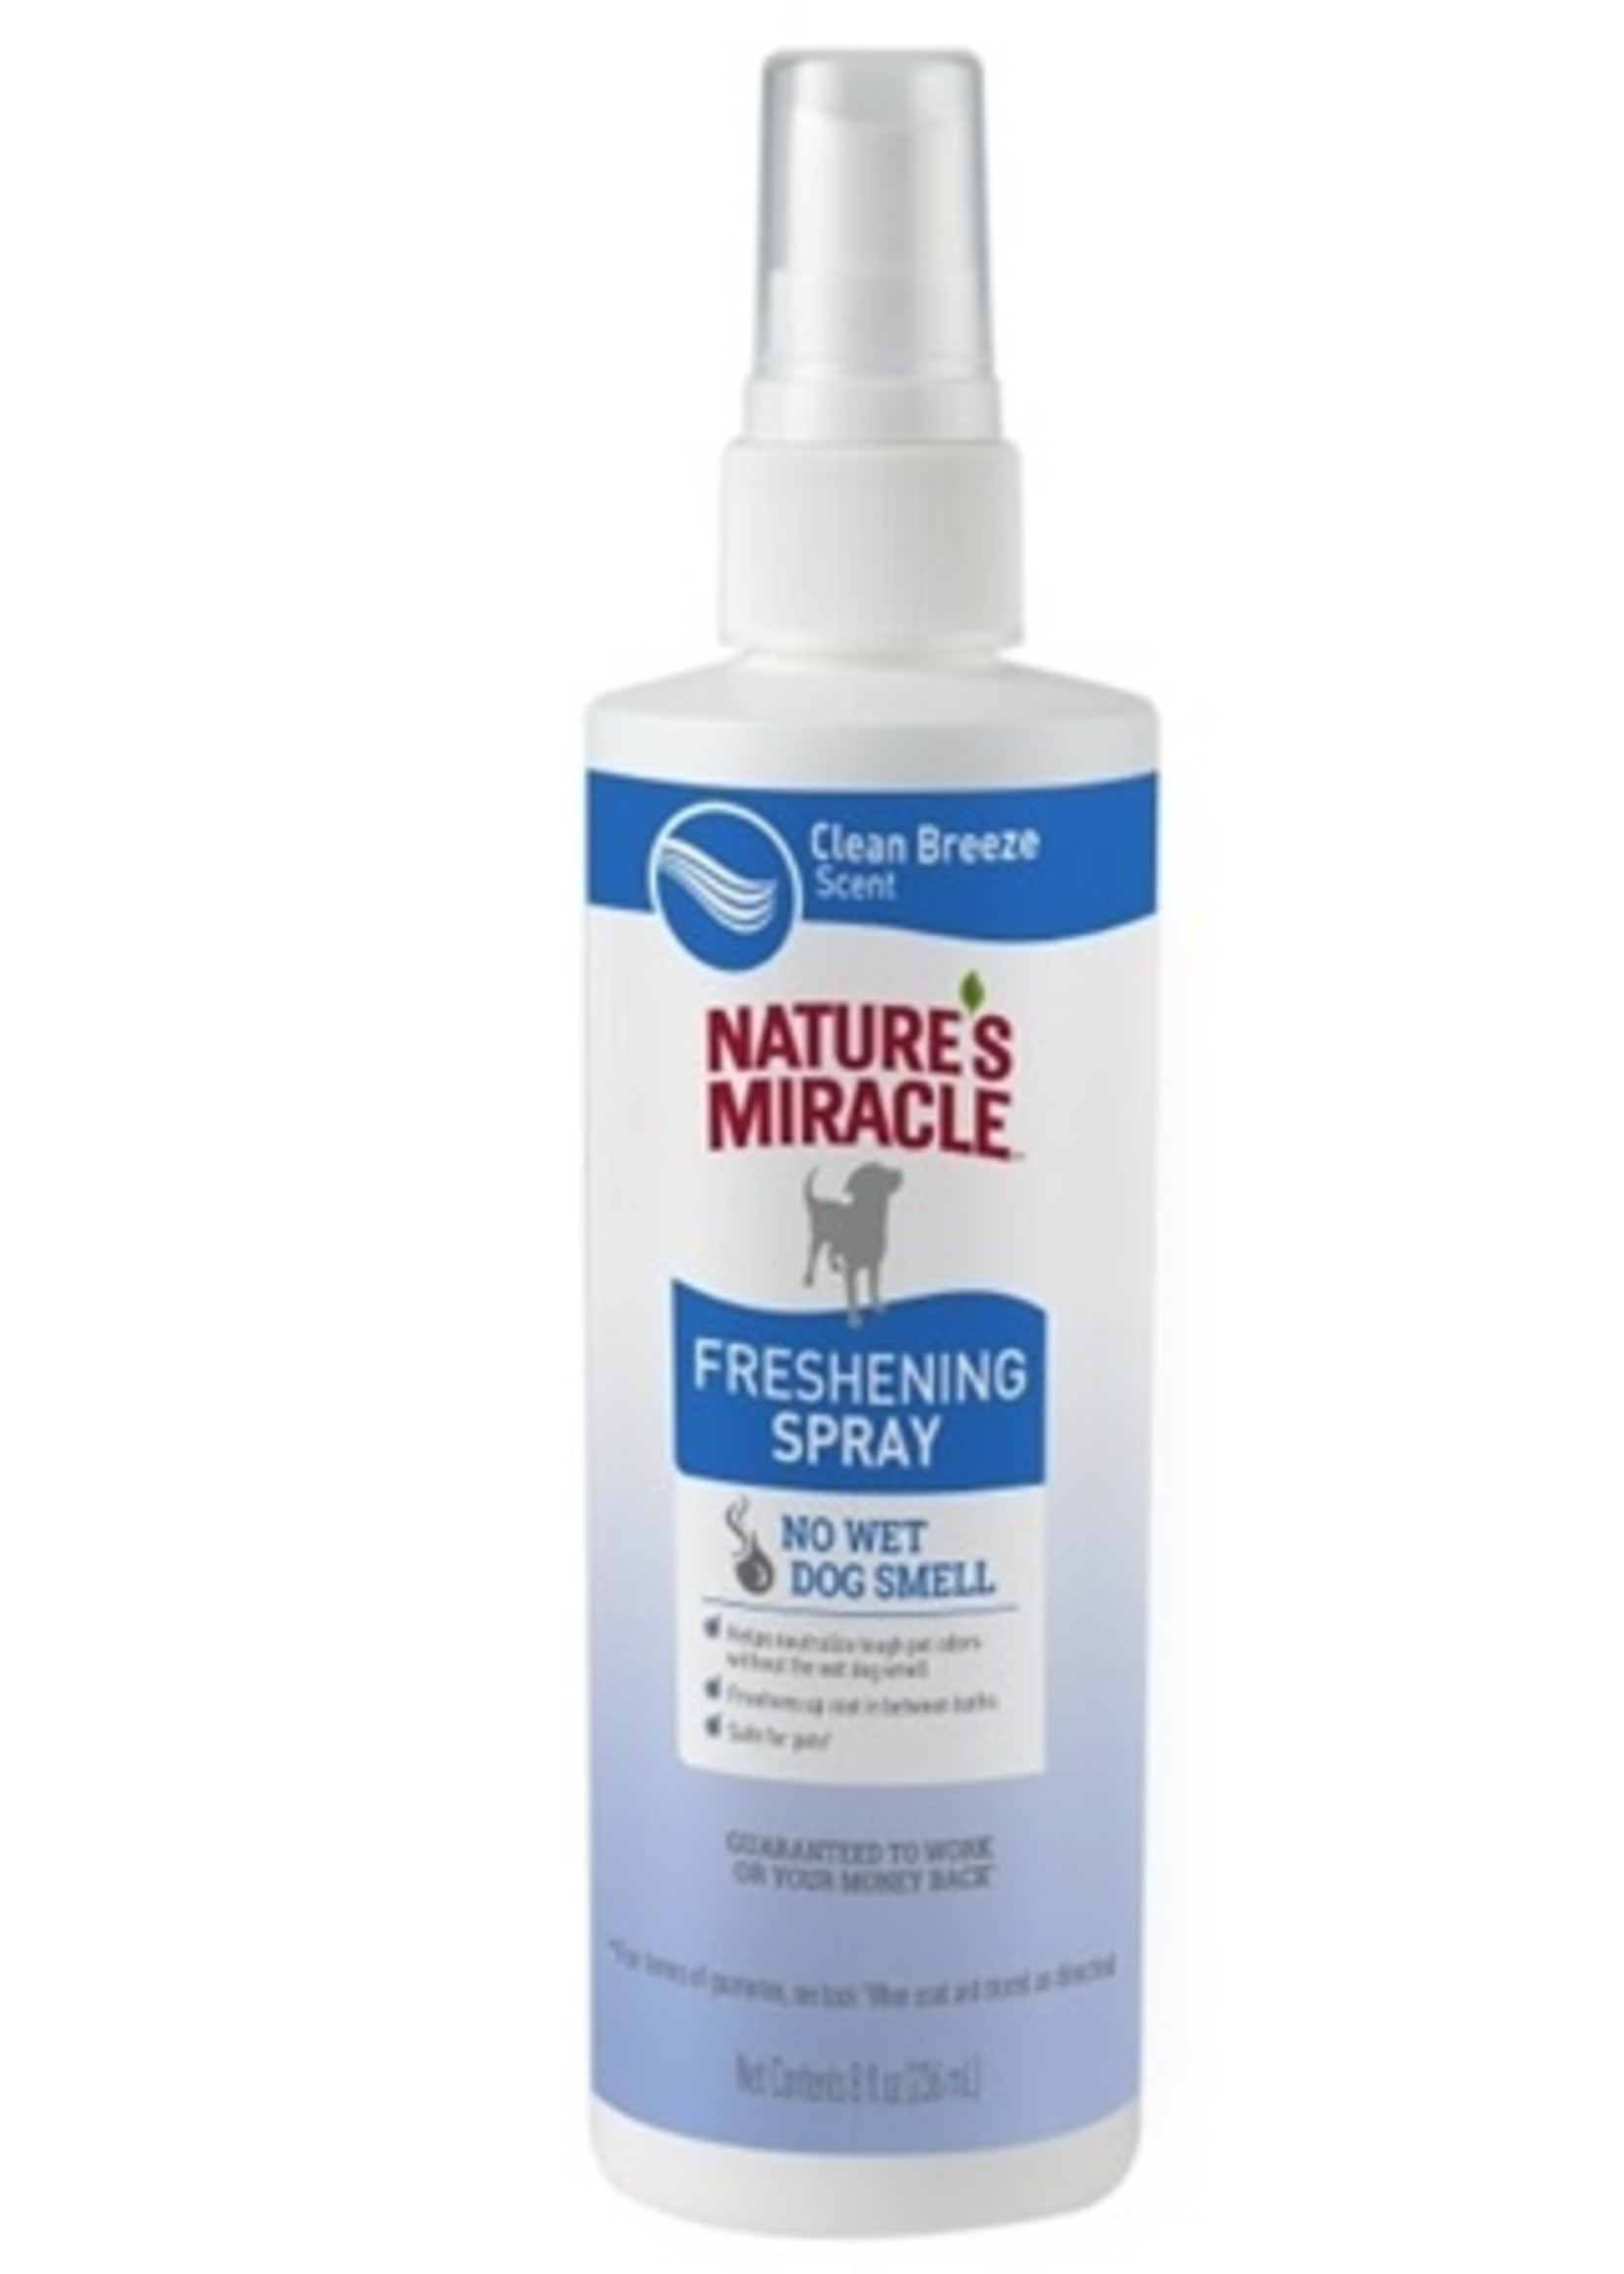 Nature's Miracle Nature's Miracle Freshing Spray 8 oz Clean Breeze